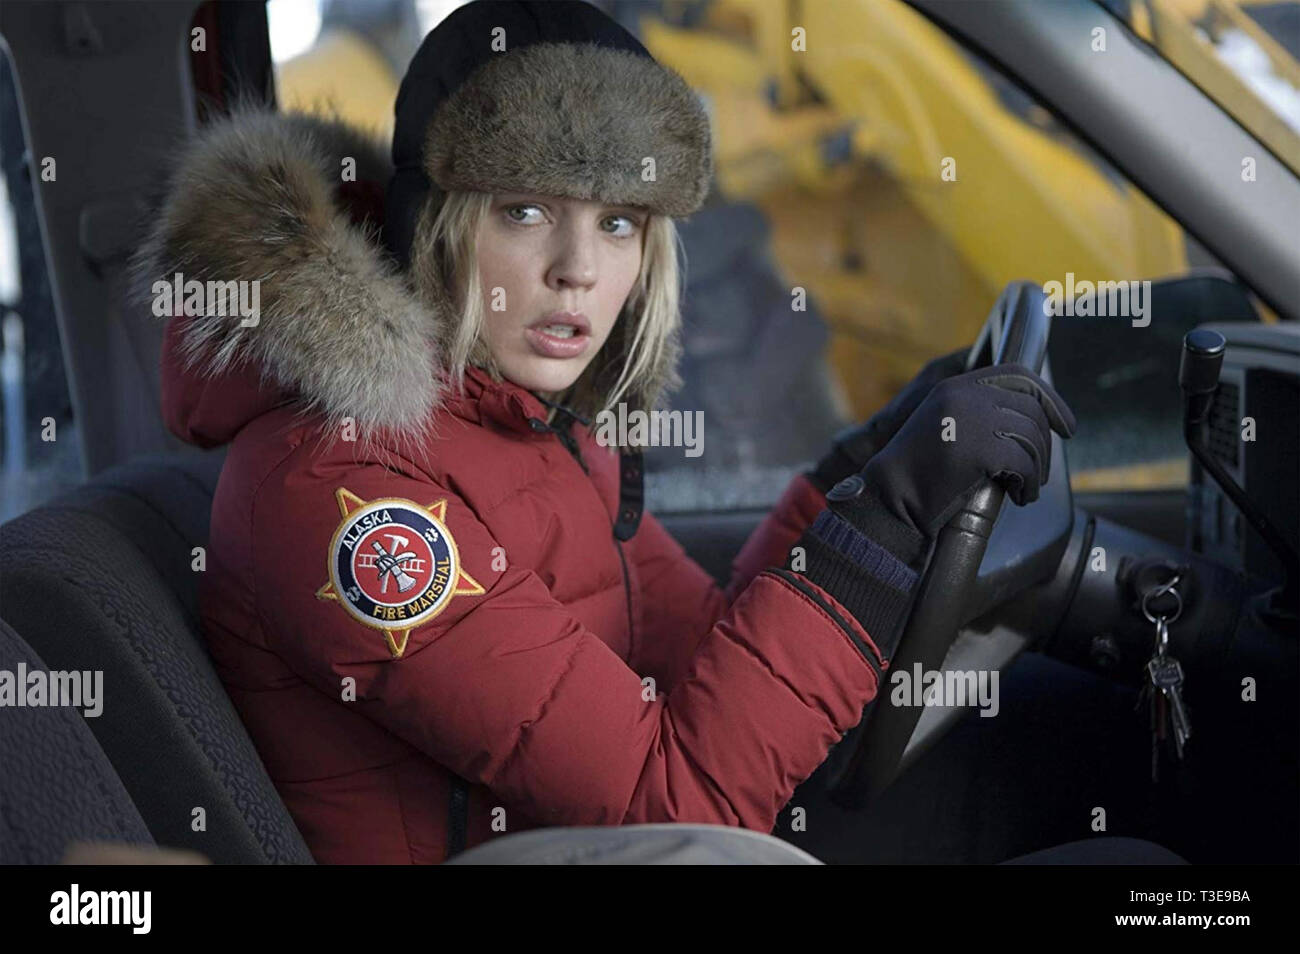 30 DAYS OF NIGHTS 2007 Columbia Pictures film with Melissa George - Stock Image